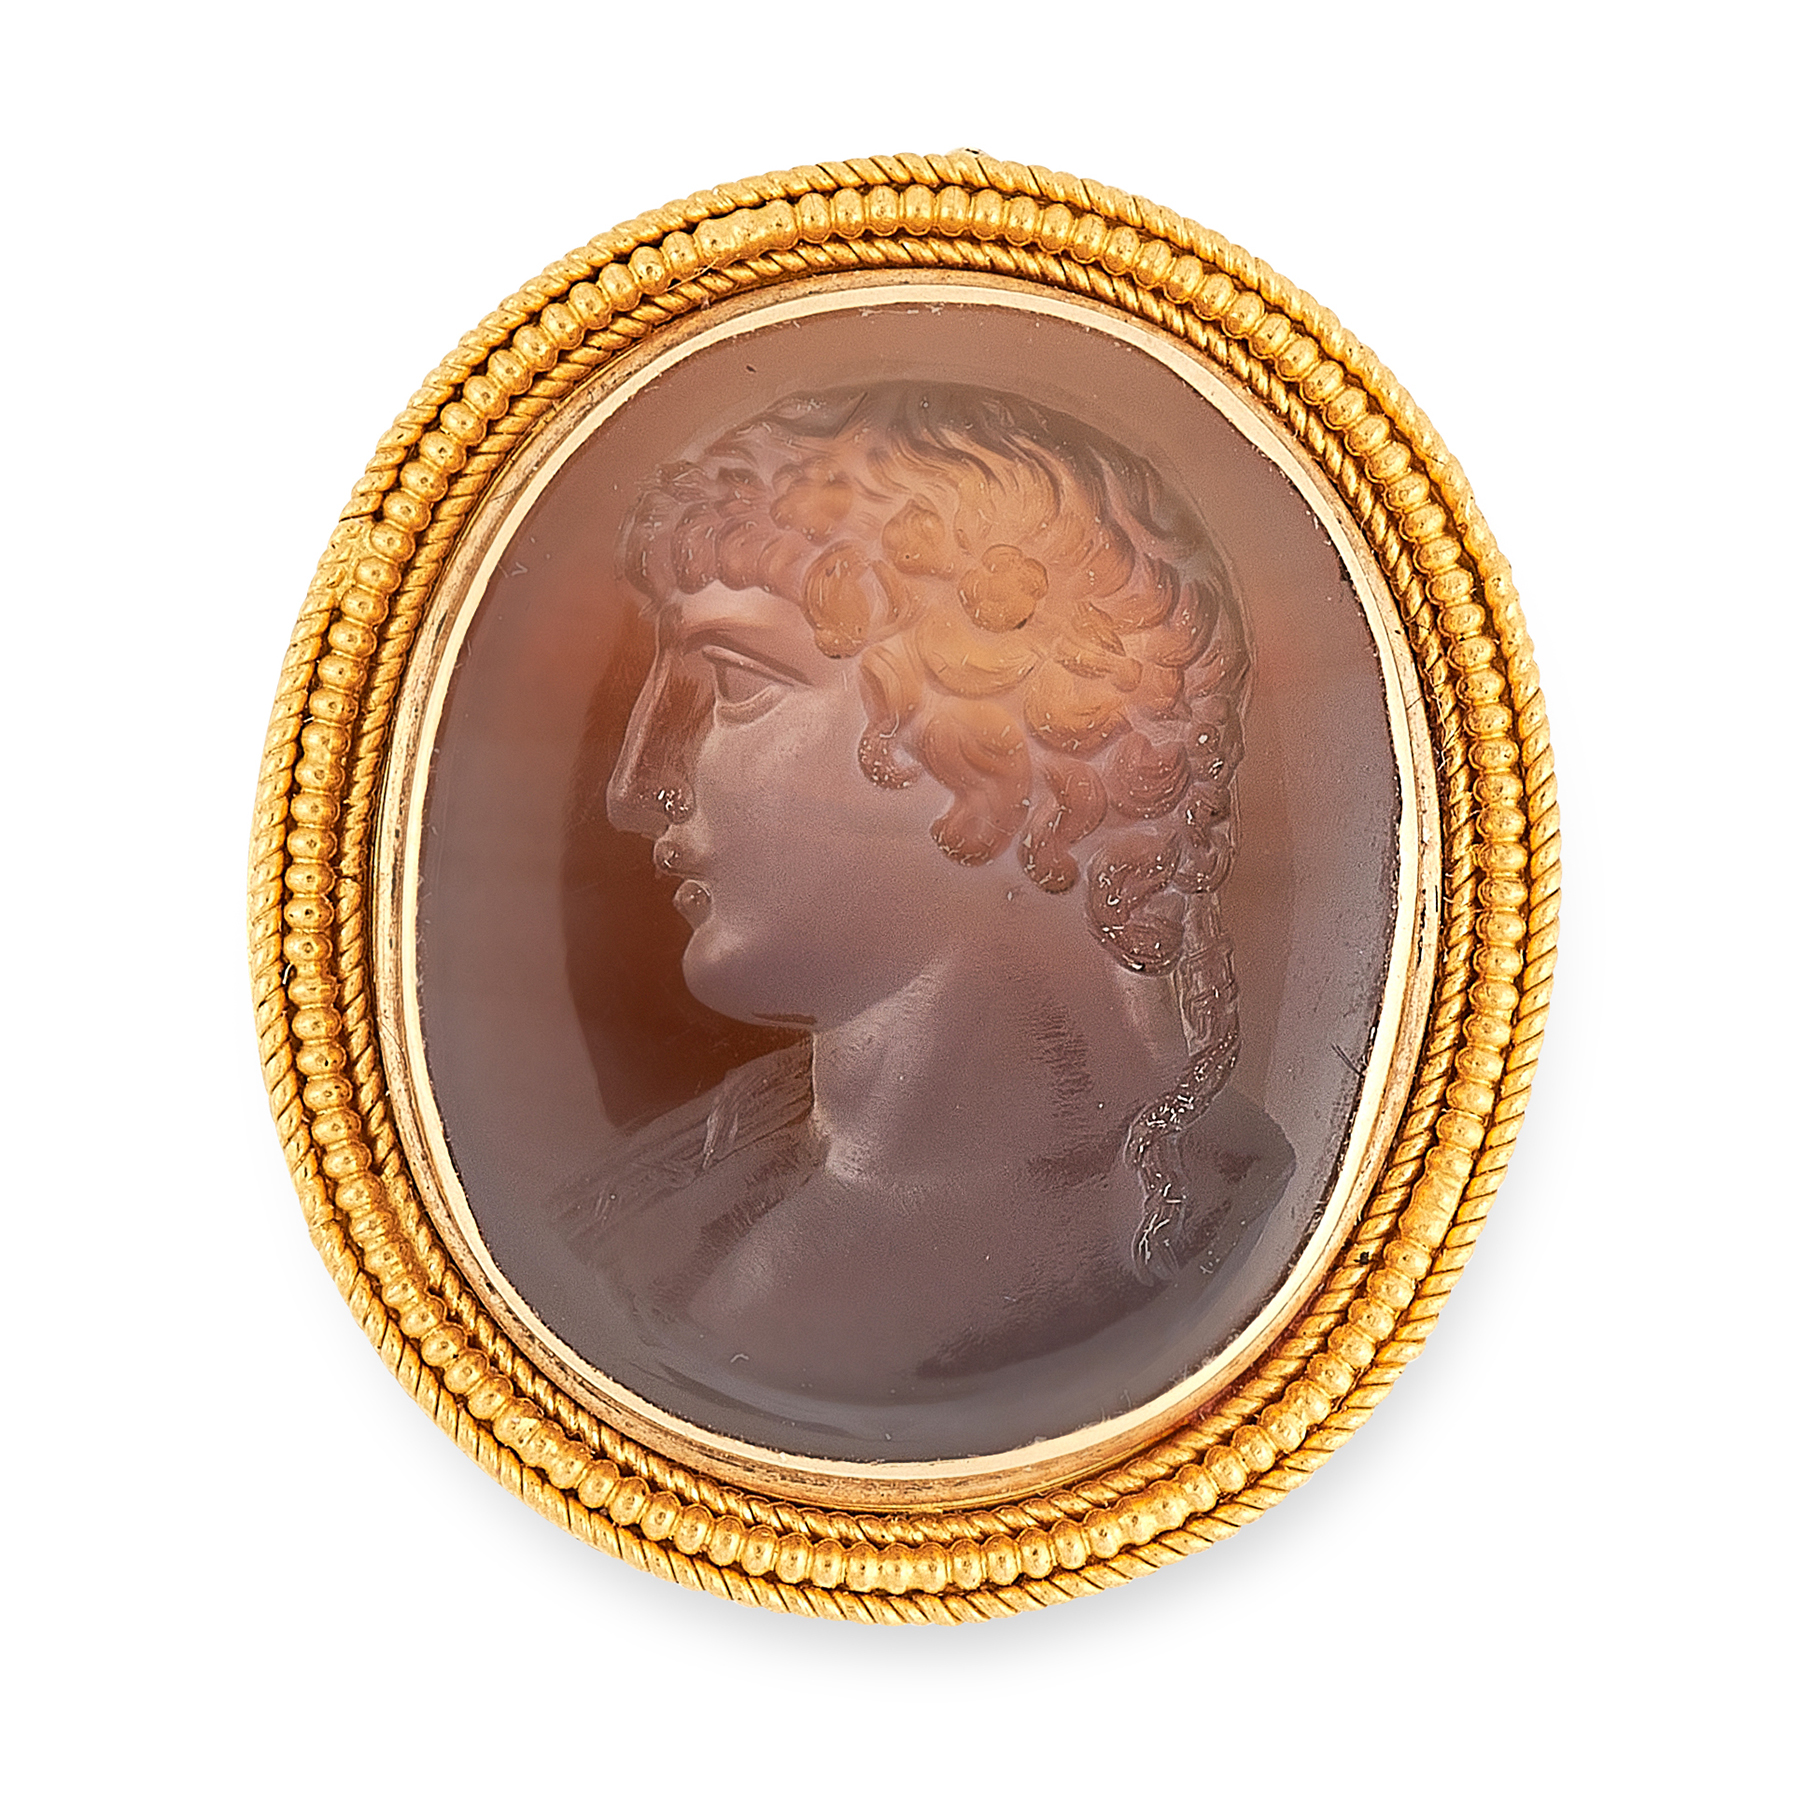 AN ANTIQUE INTAGLIO SEAL BROOCH in high carat yellow gold, the oval face set with a carved hardstone